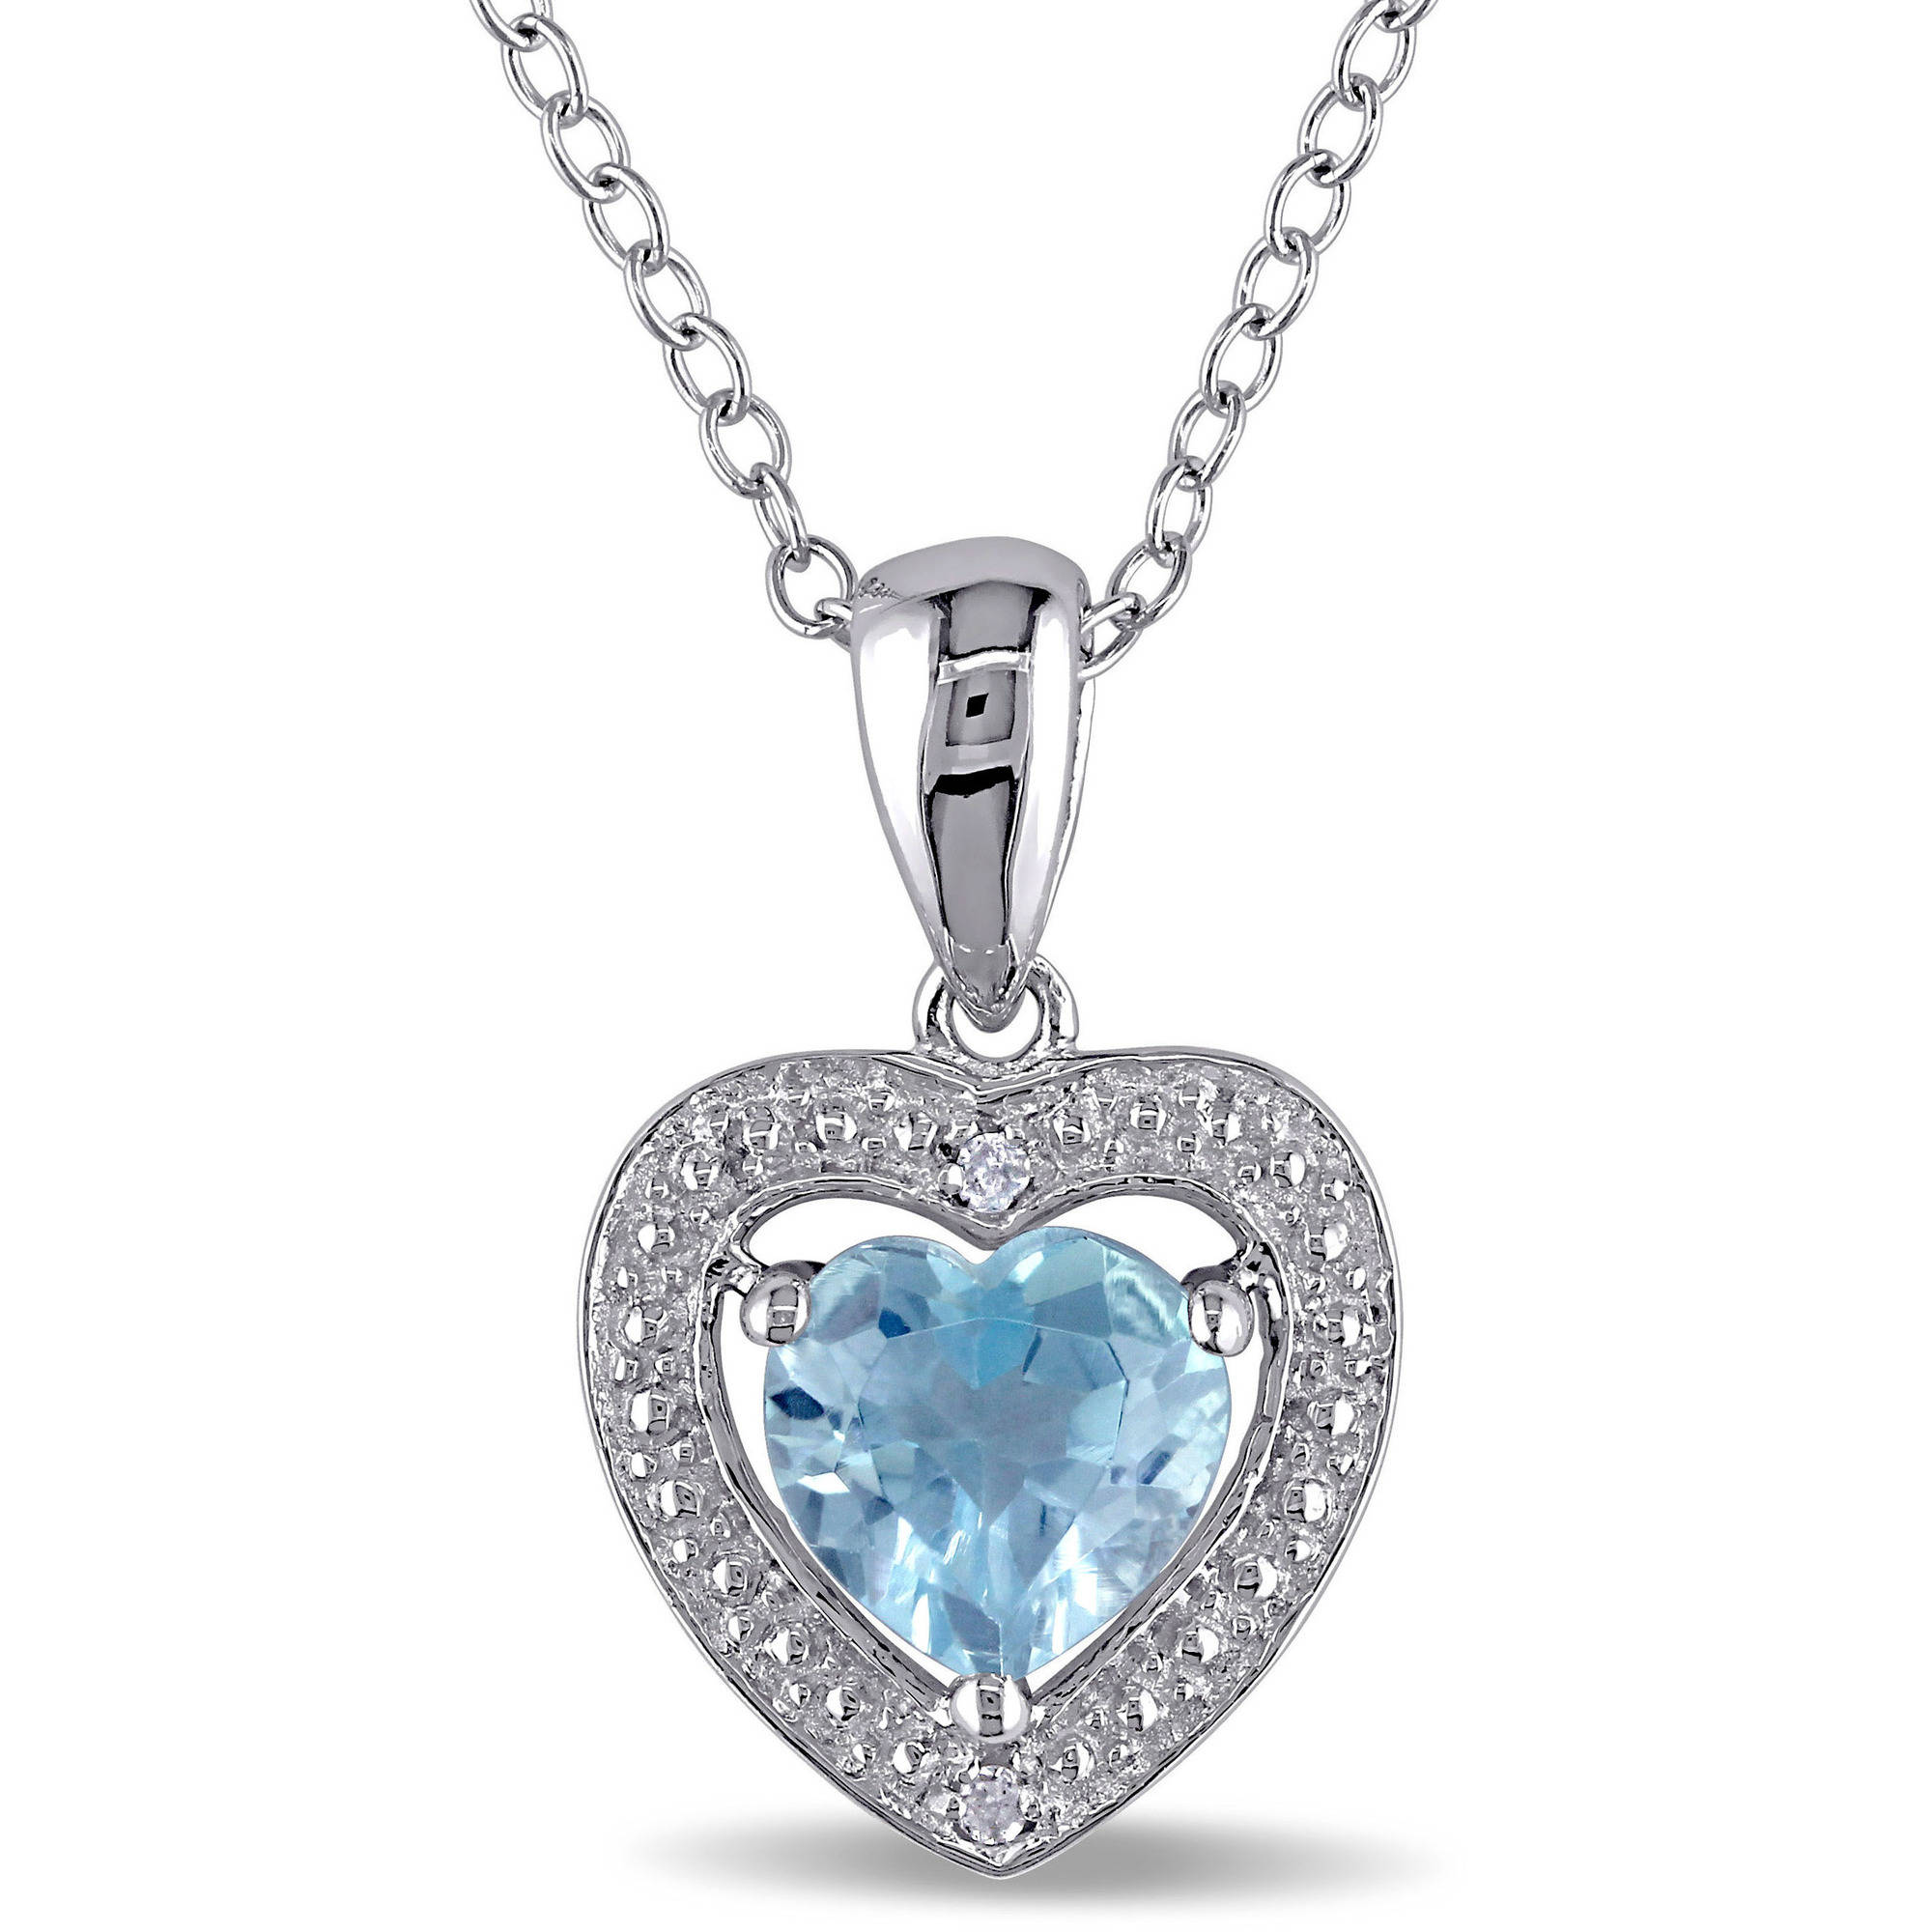 Tangelo 1 Carat T.G.W. Blue Topaz and Diamond Accent Sky Heart Pendant in Sterling Silver, 18